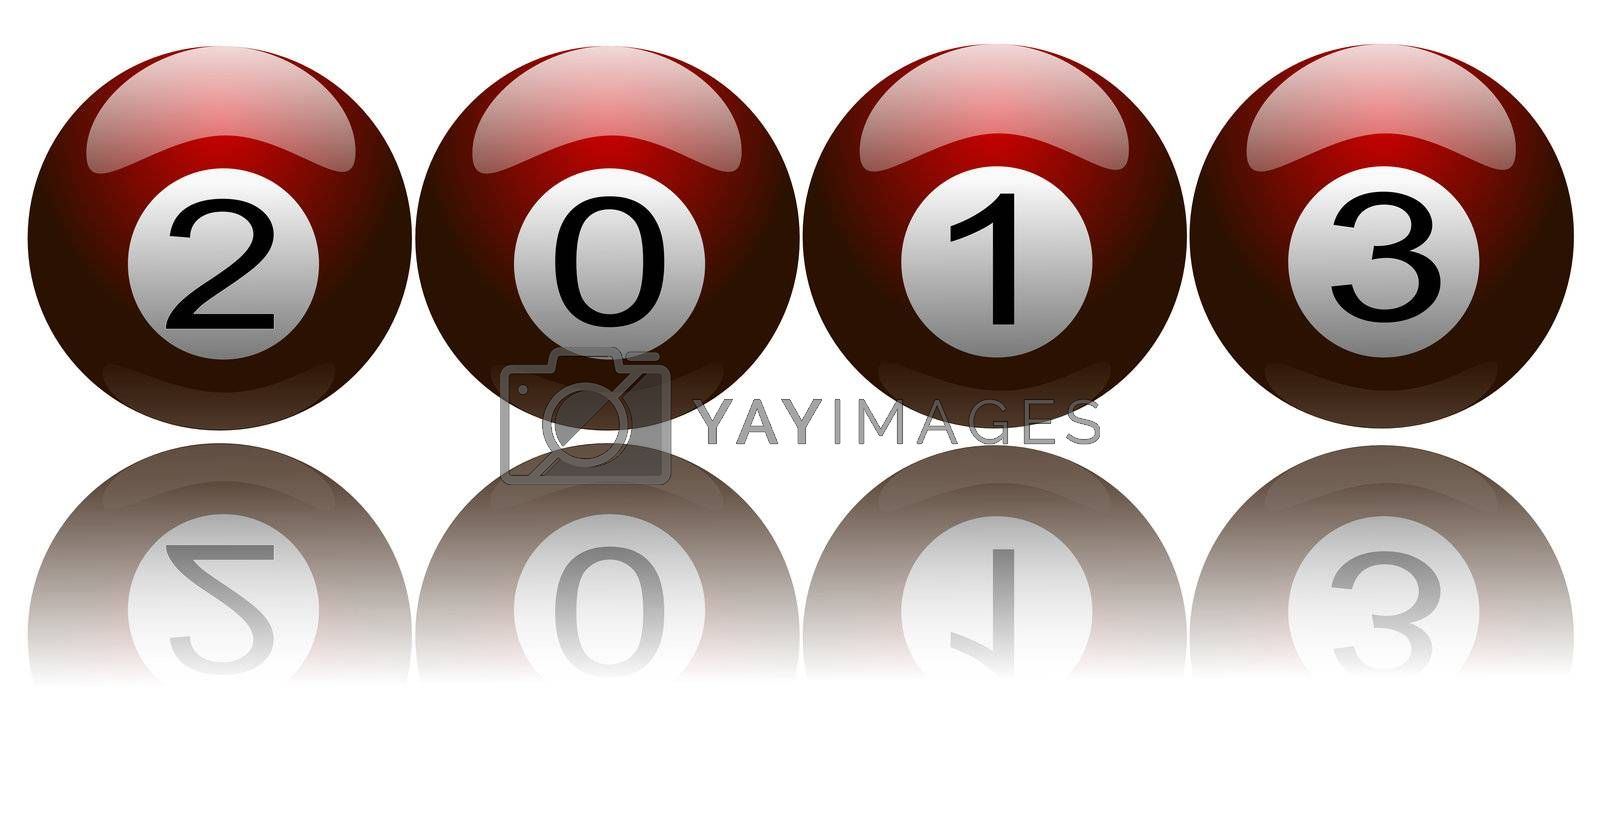 Illustration of New Year 2013 with digits on pool balls